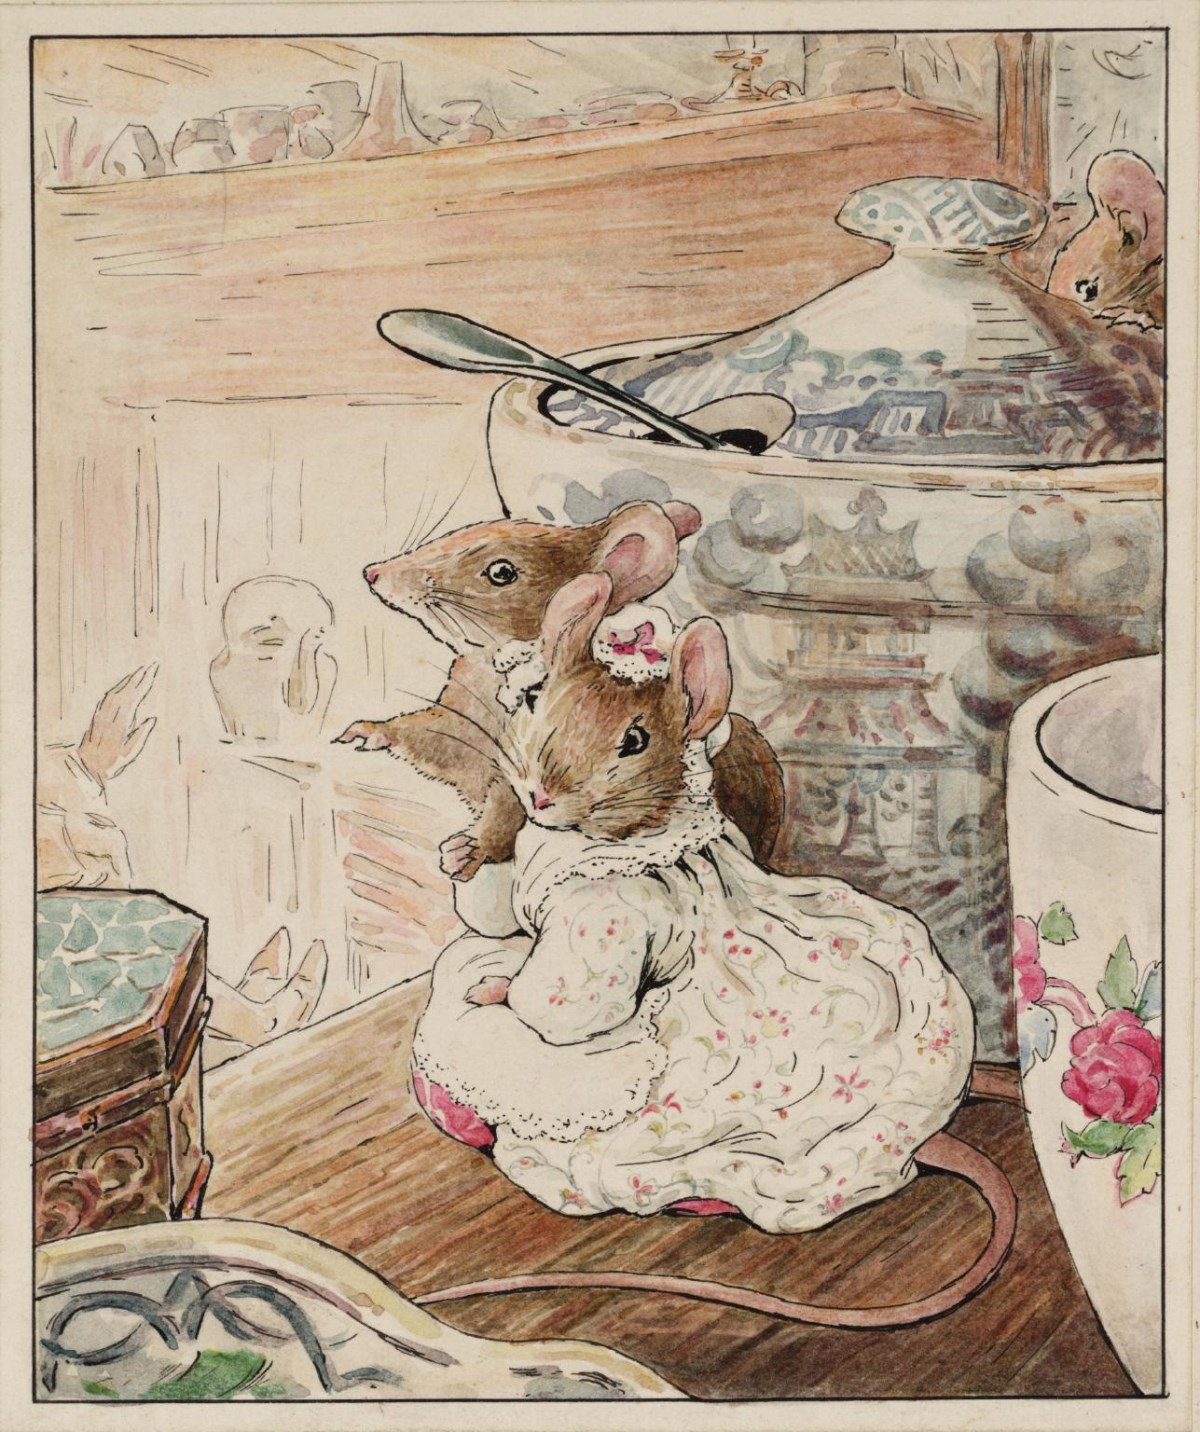 The Mice Listen to the Tailor